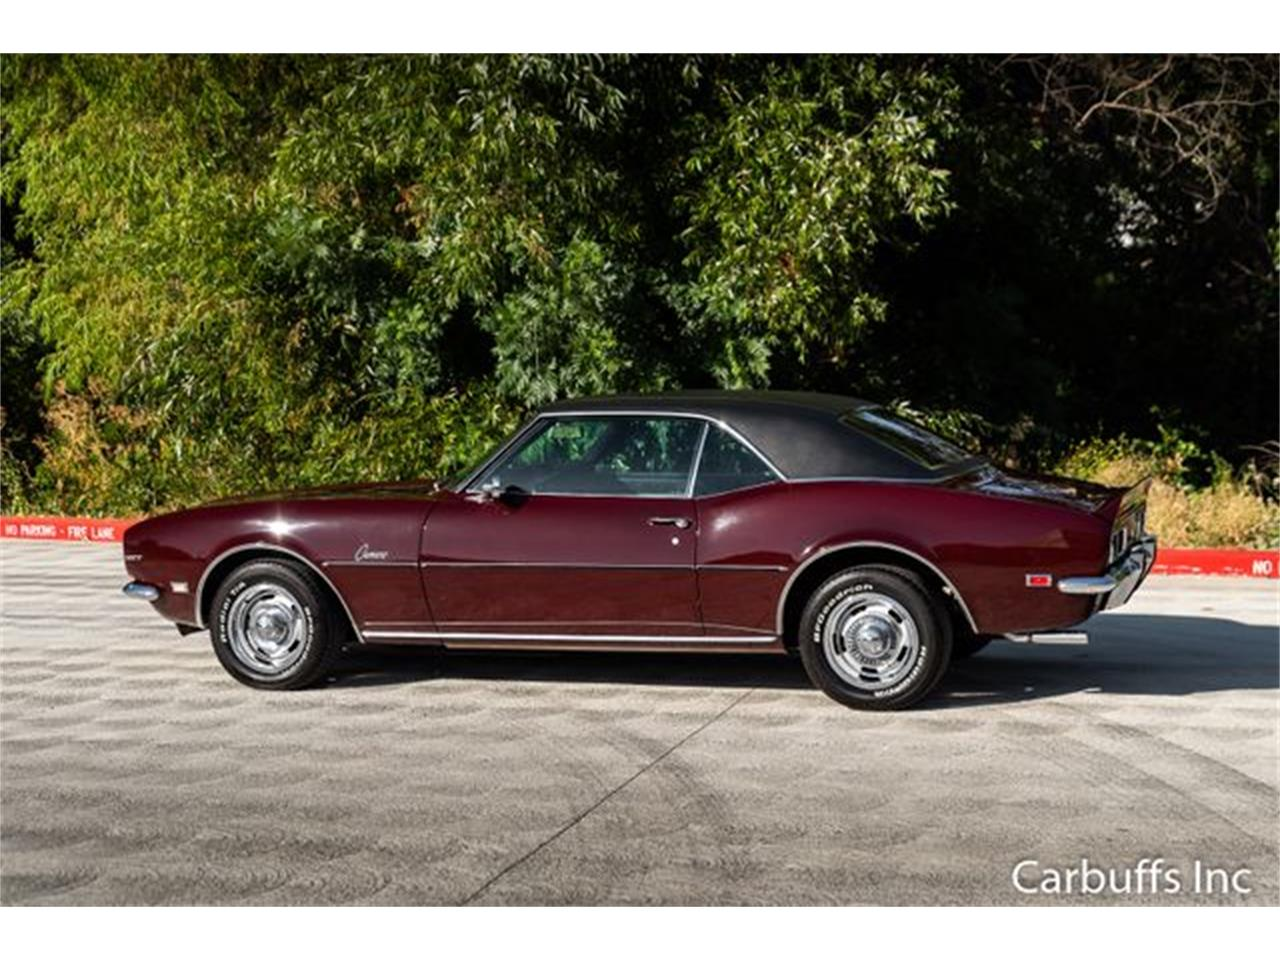 Large Picture of '68 Chevrolet Camaro located in Concord California - $29,950.00 - QL0H